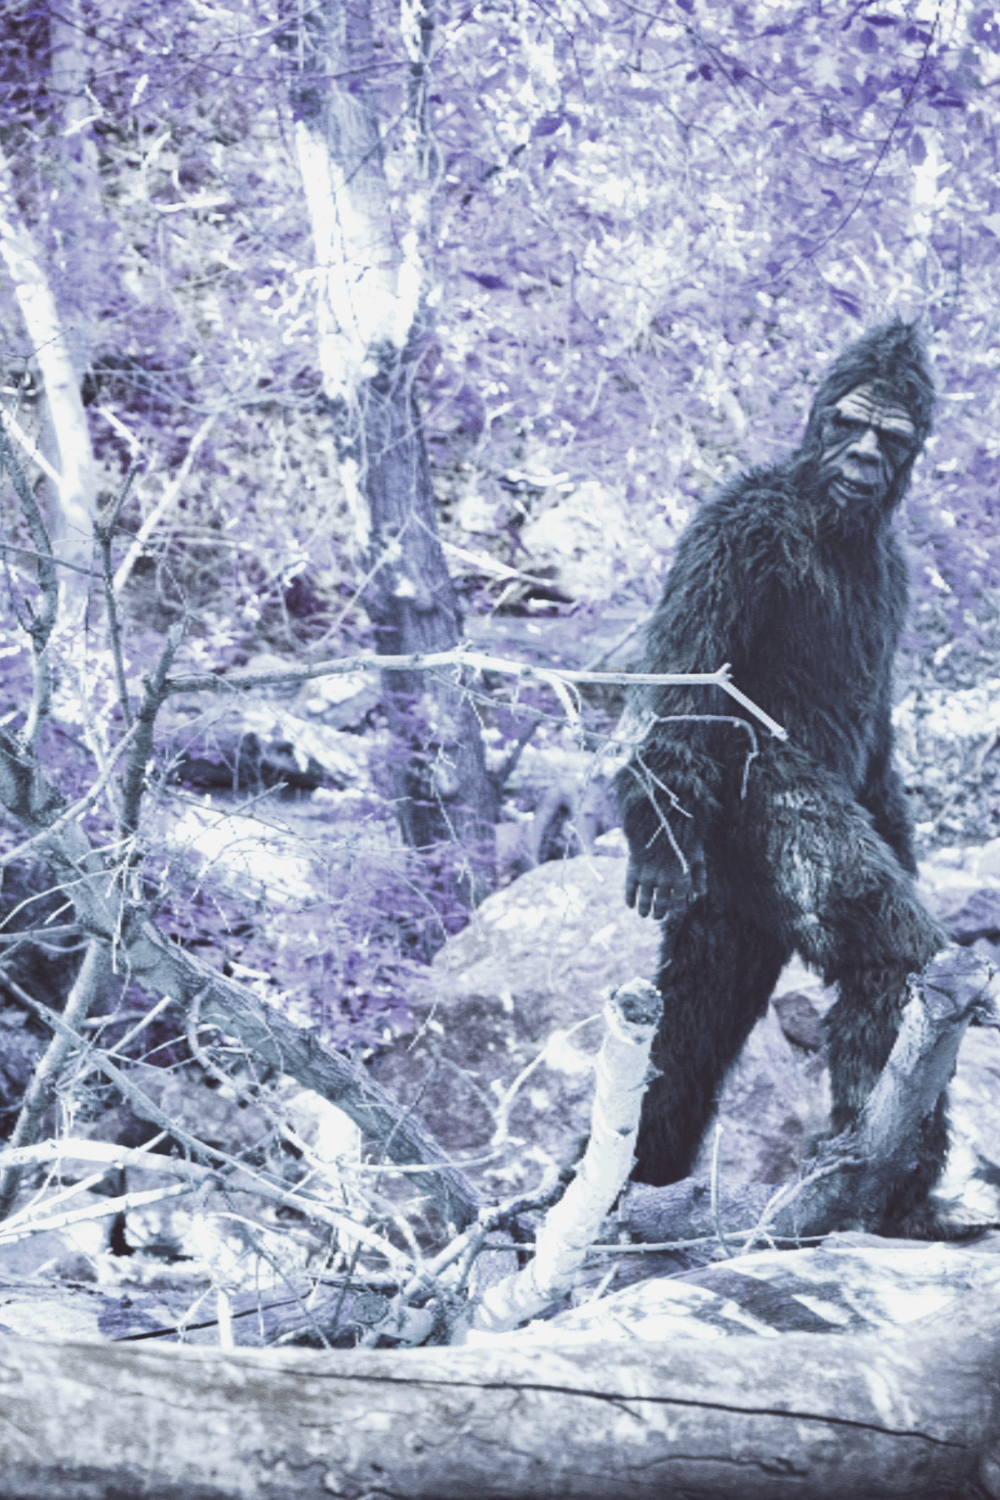 Bigfoot walking through the forest.